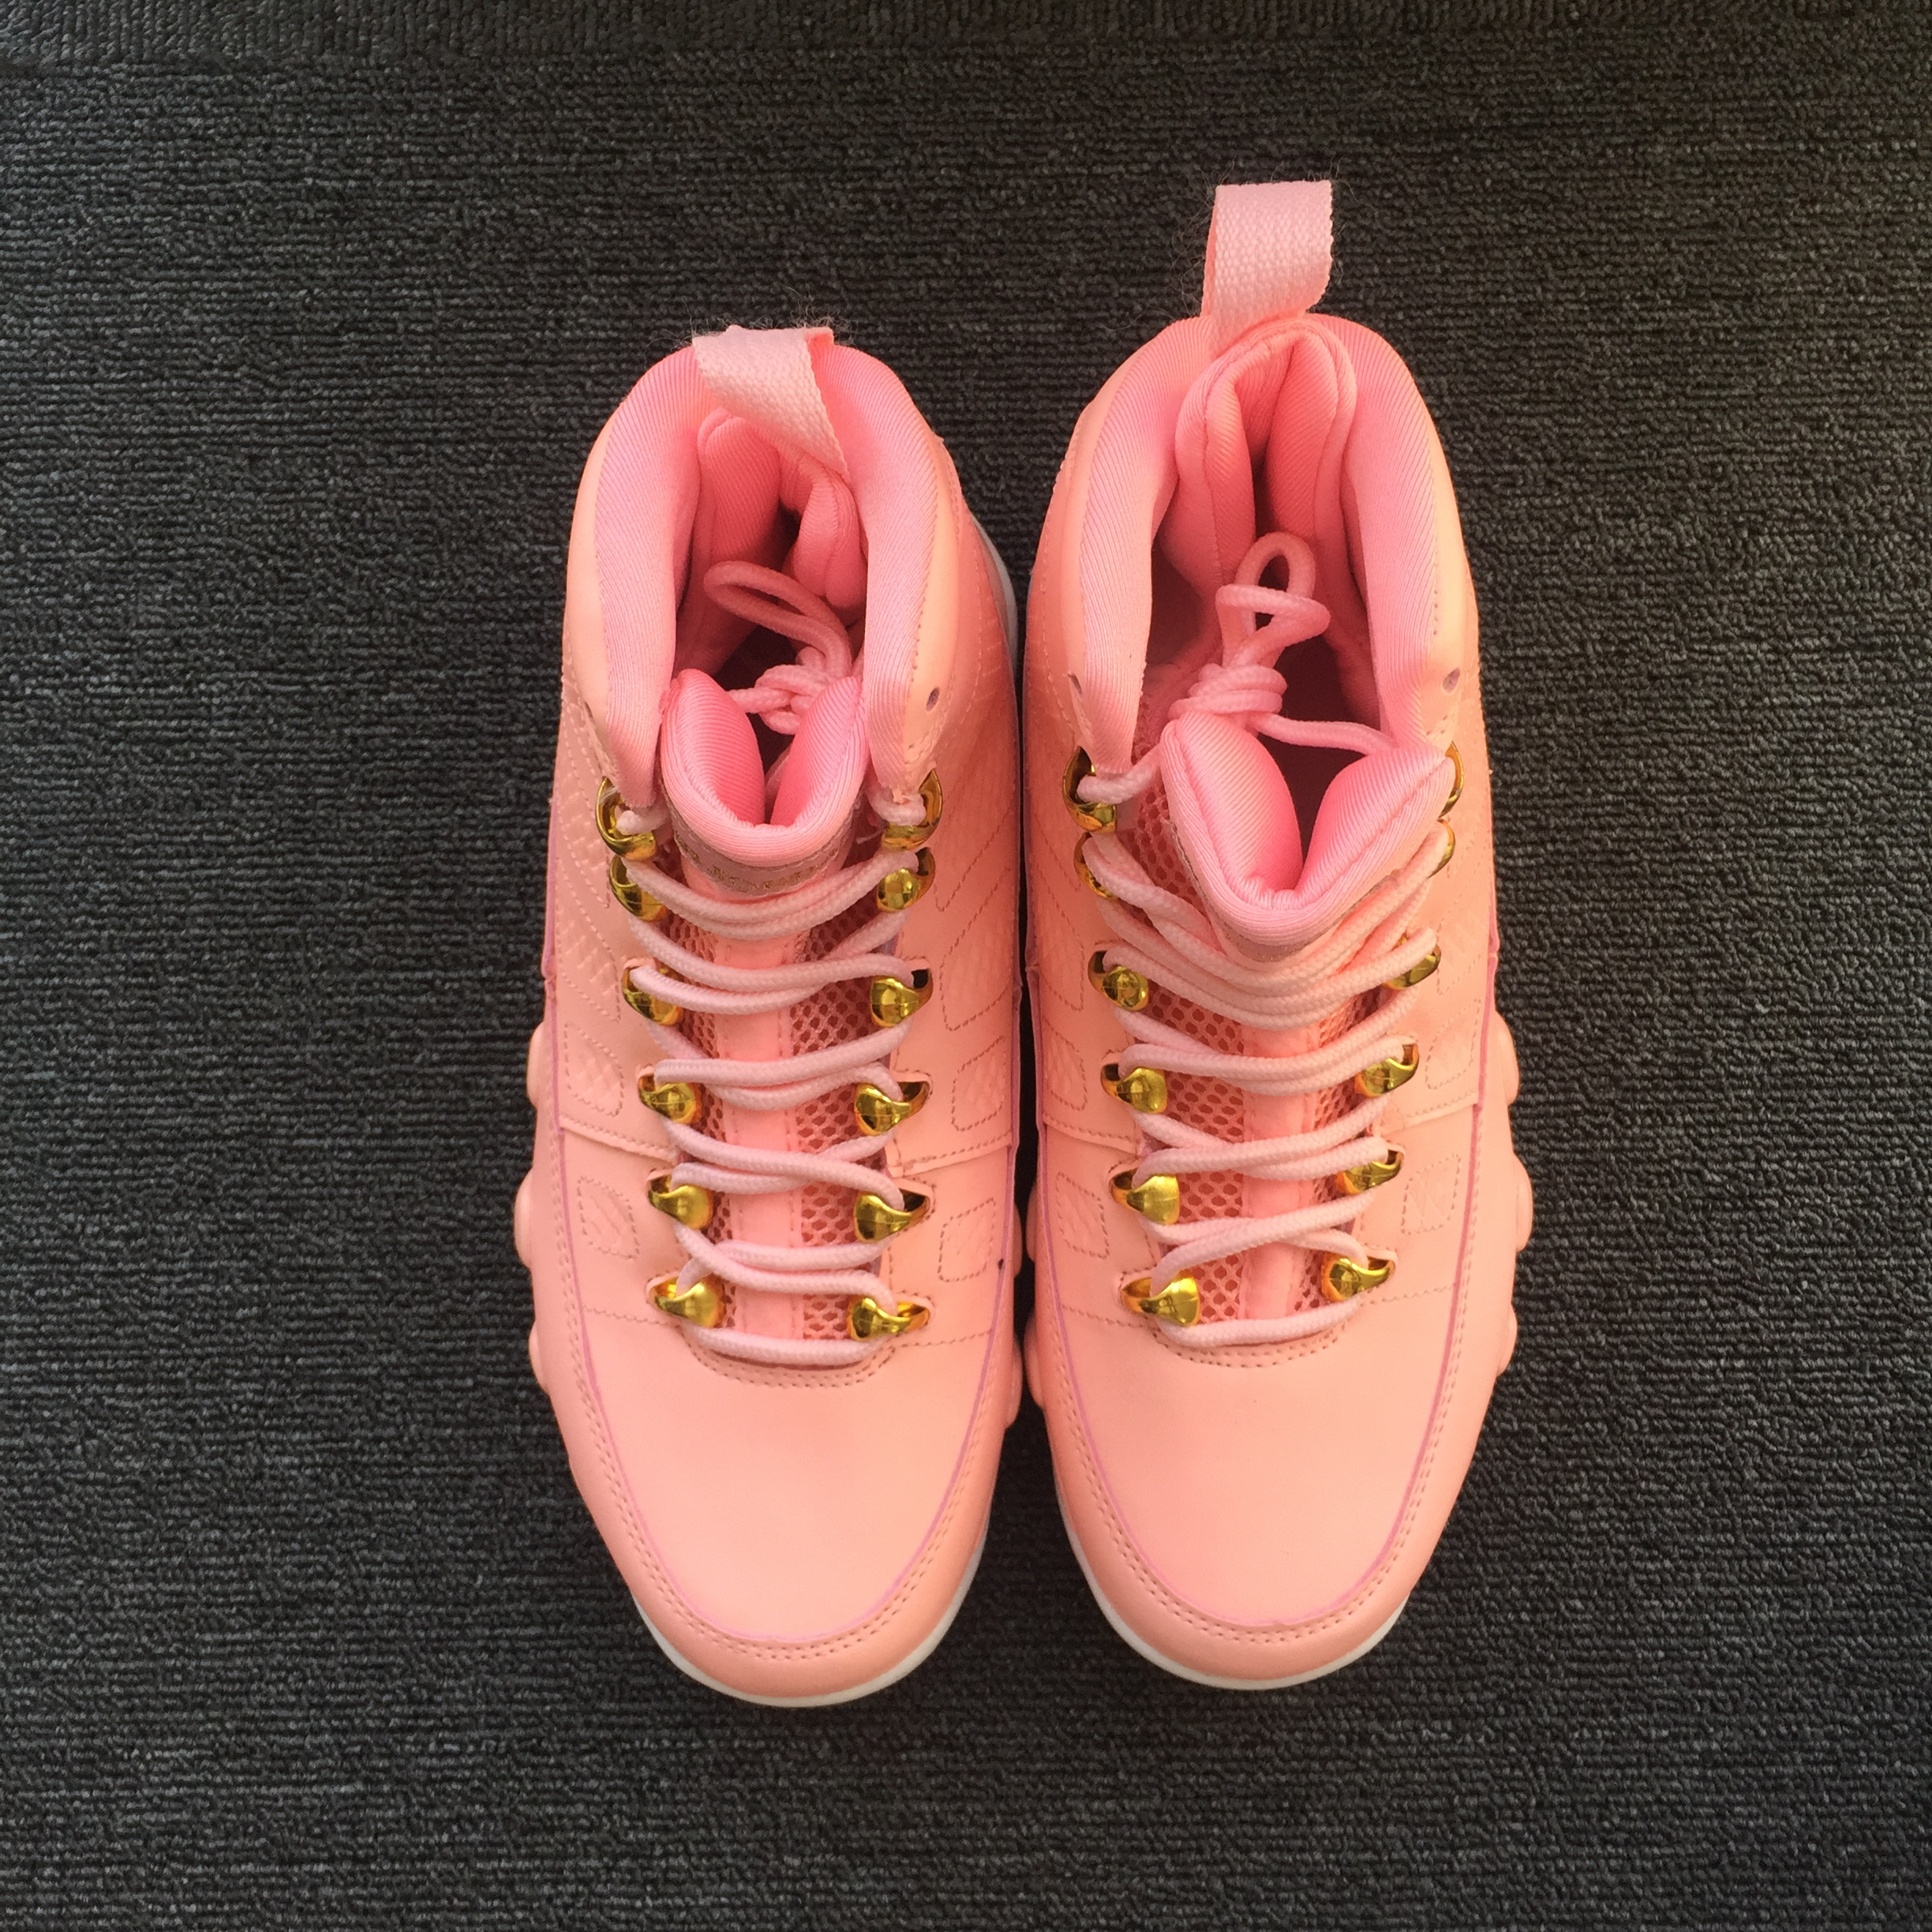 0016fb976ccf32 Women Air Jordan 9 Pink Red White Shoes  17og120701  -  75.00 ...